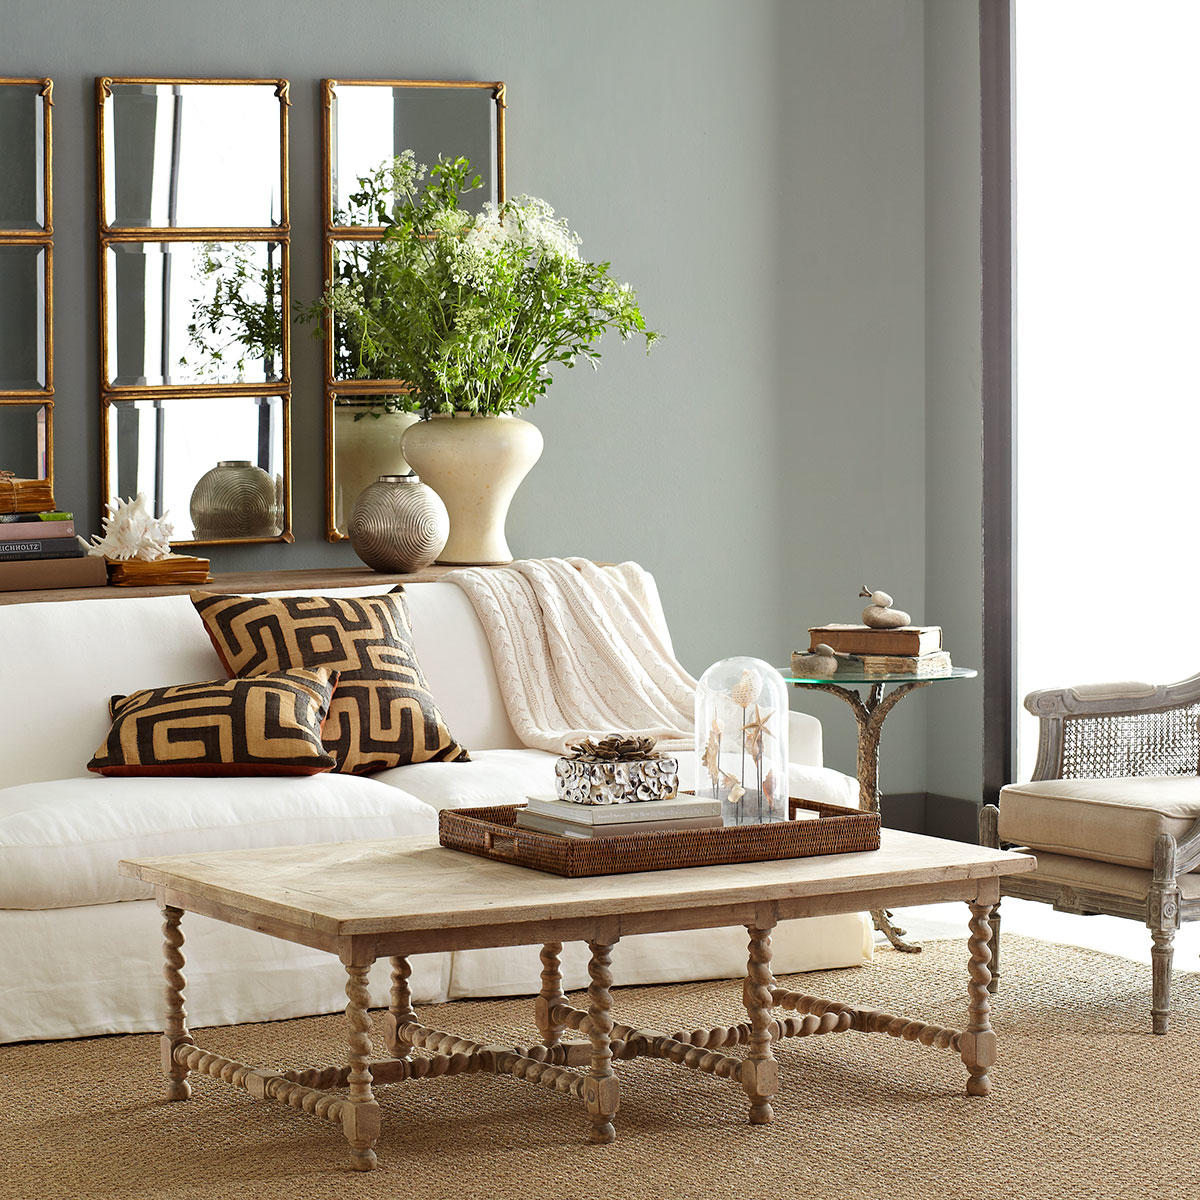 The Barley Twist coffee table from Wisteria